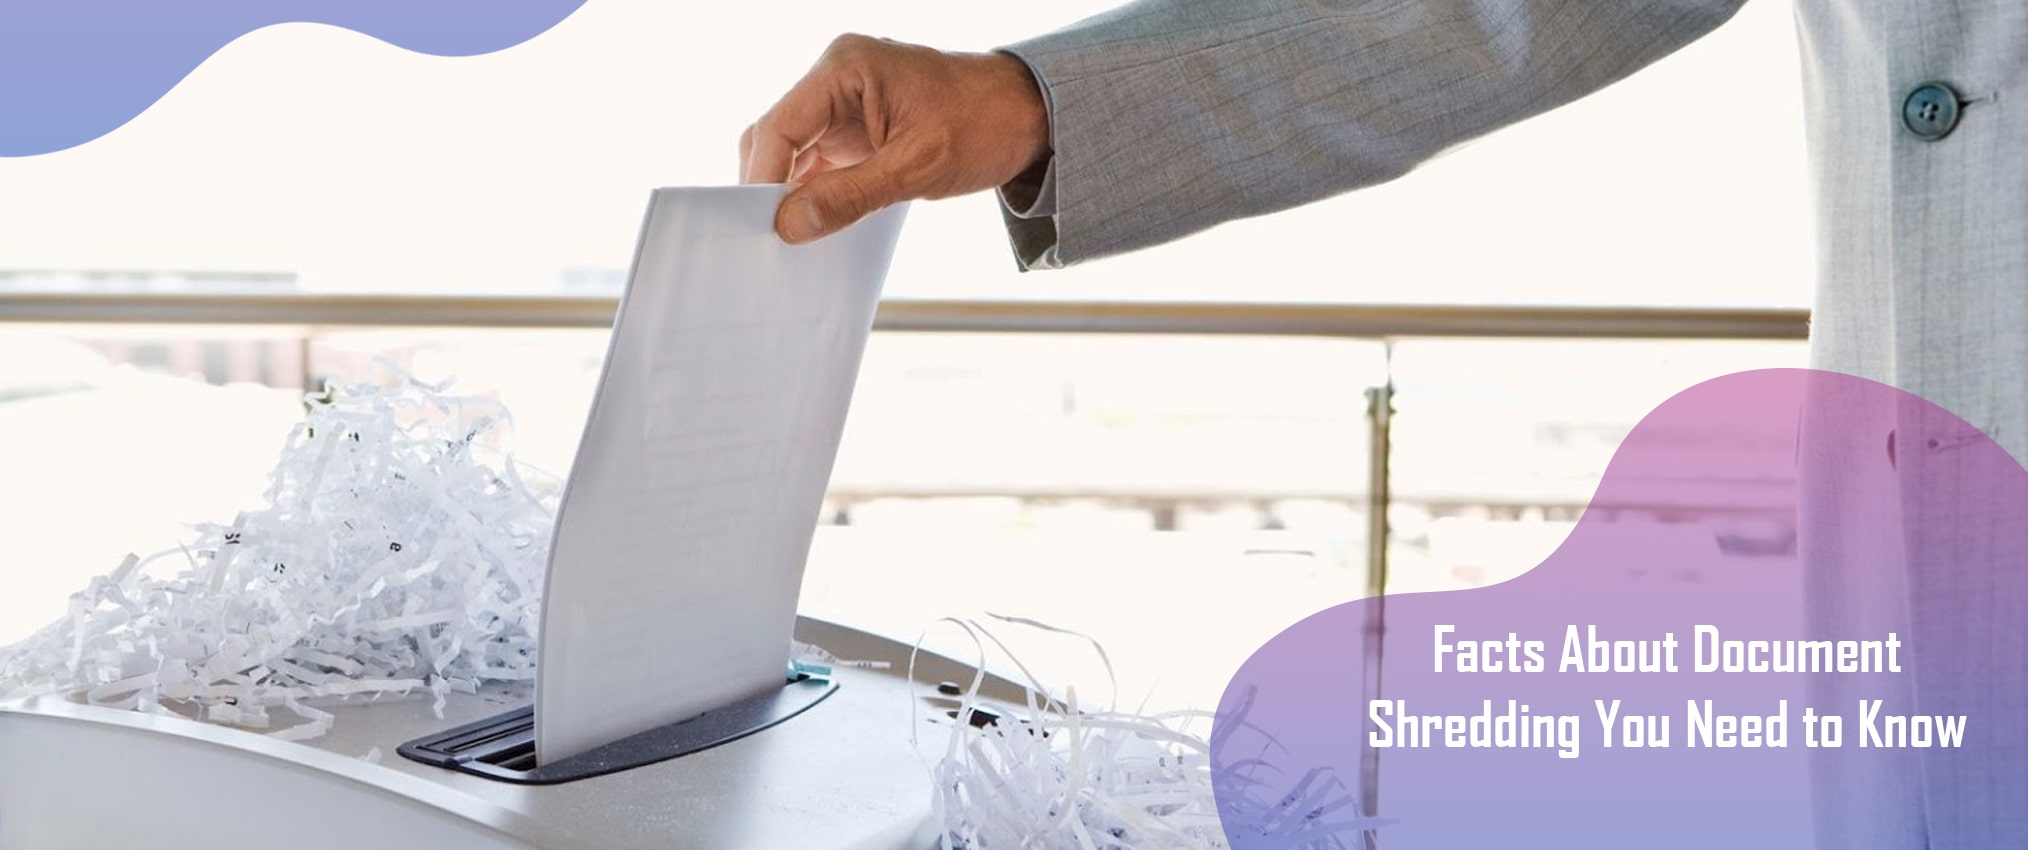 facts about document shredding